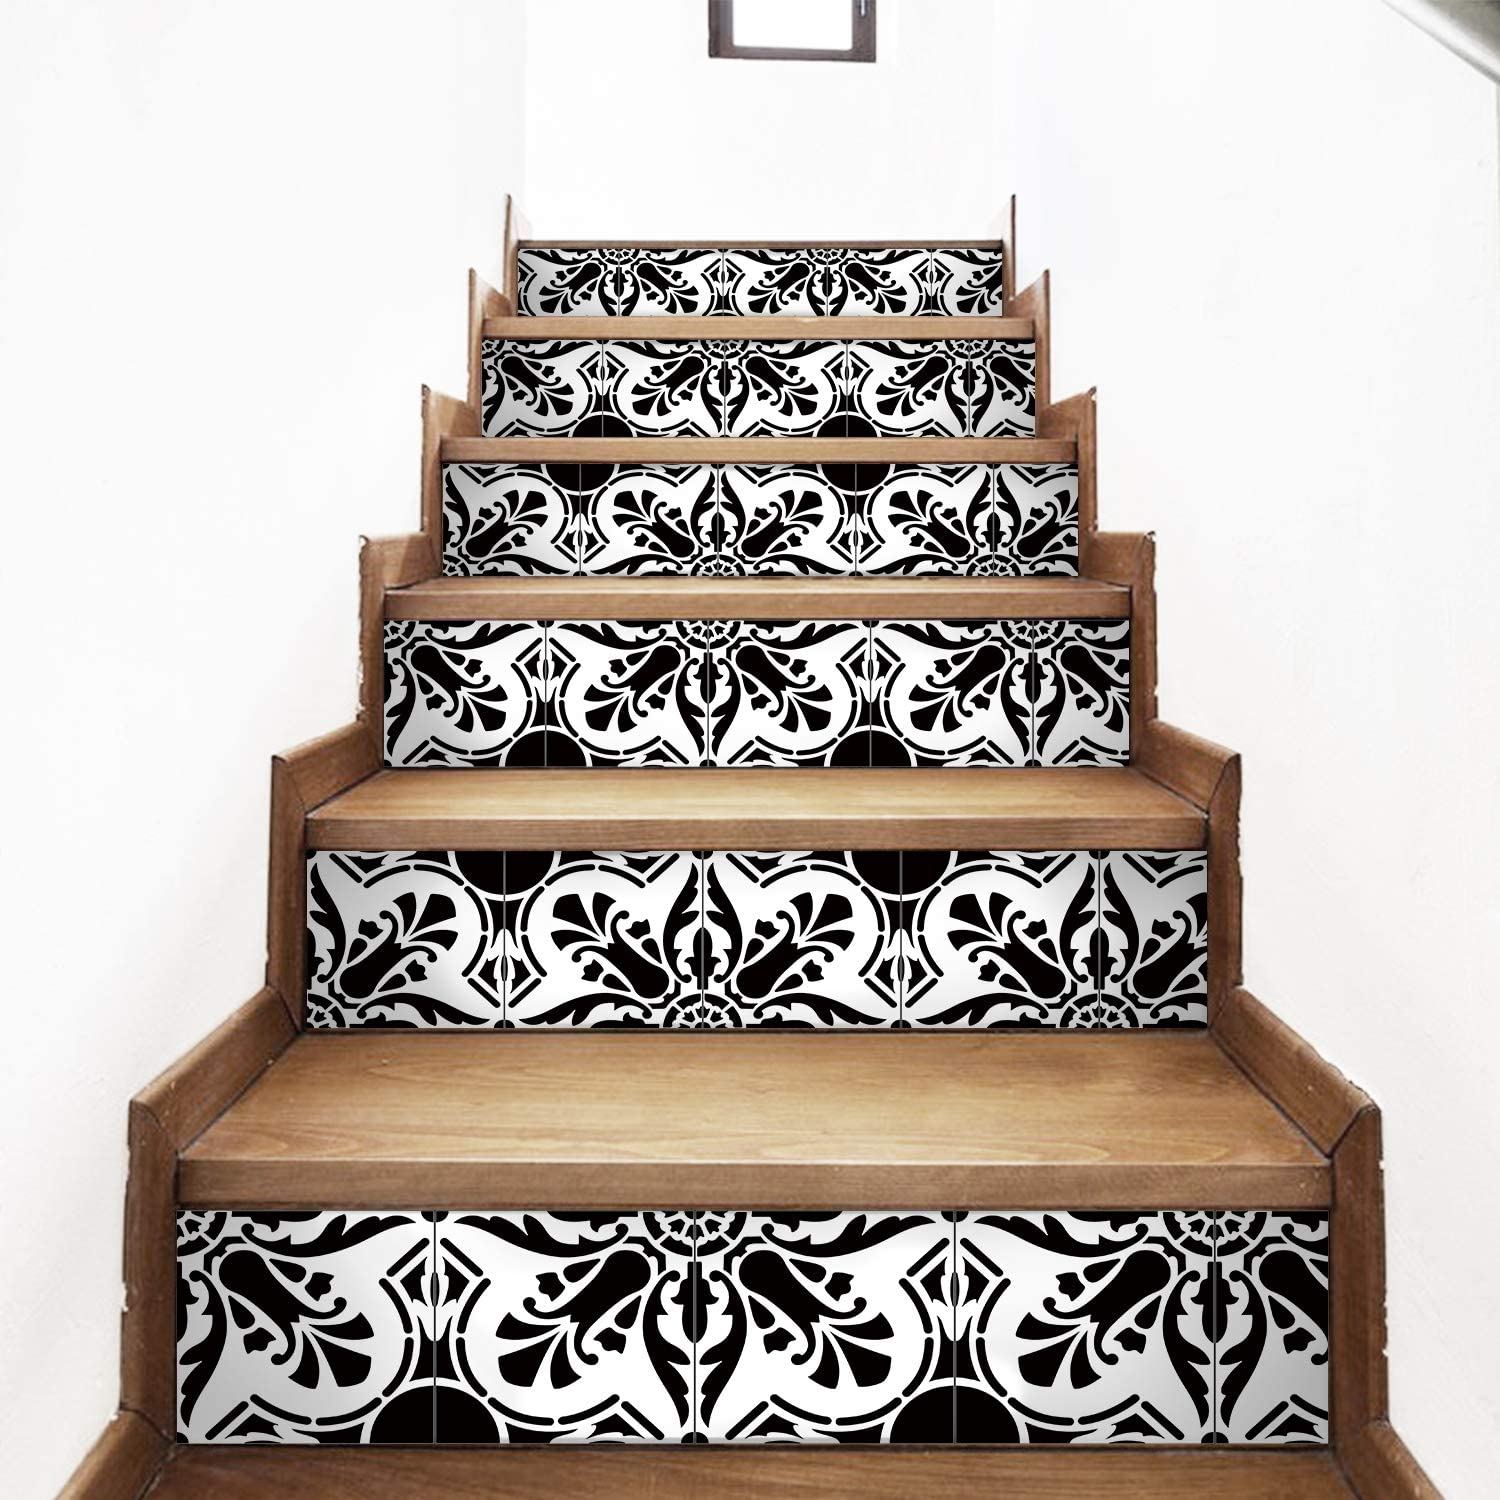 Max 66% OFF AMAZING WALL AmazingWall Black White All stores are sold Sticker Style Arabic Stair